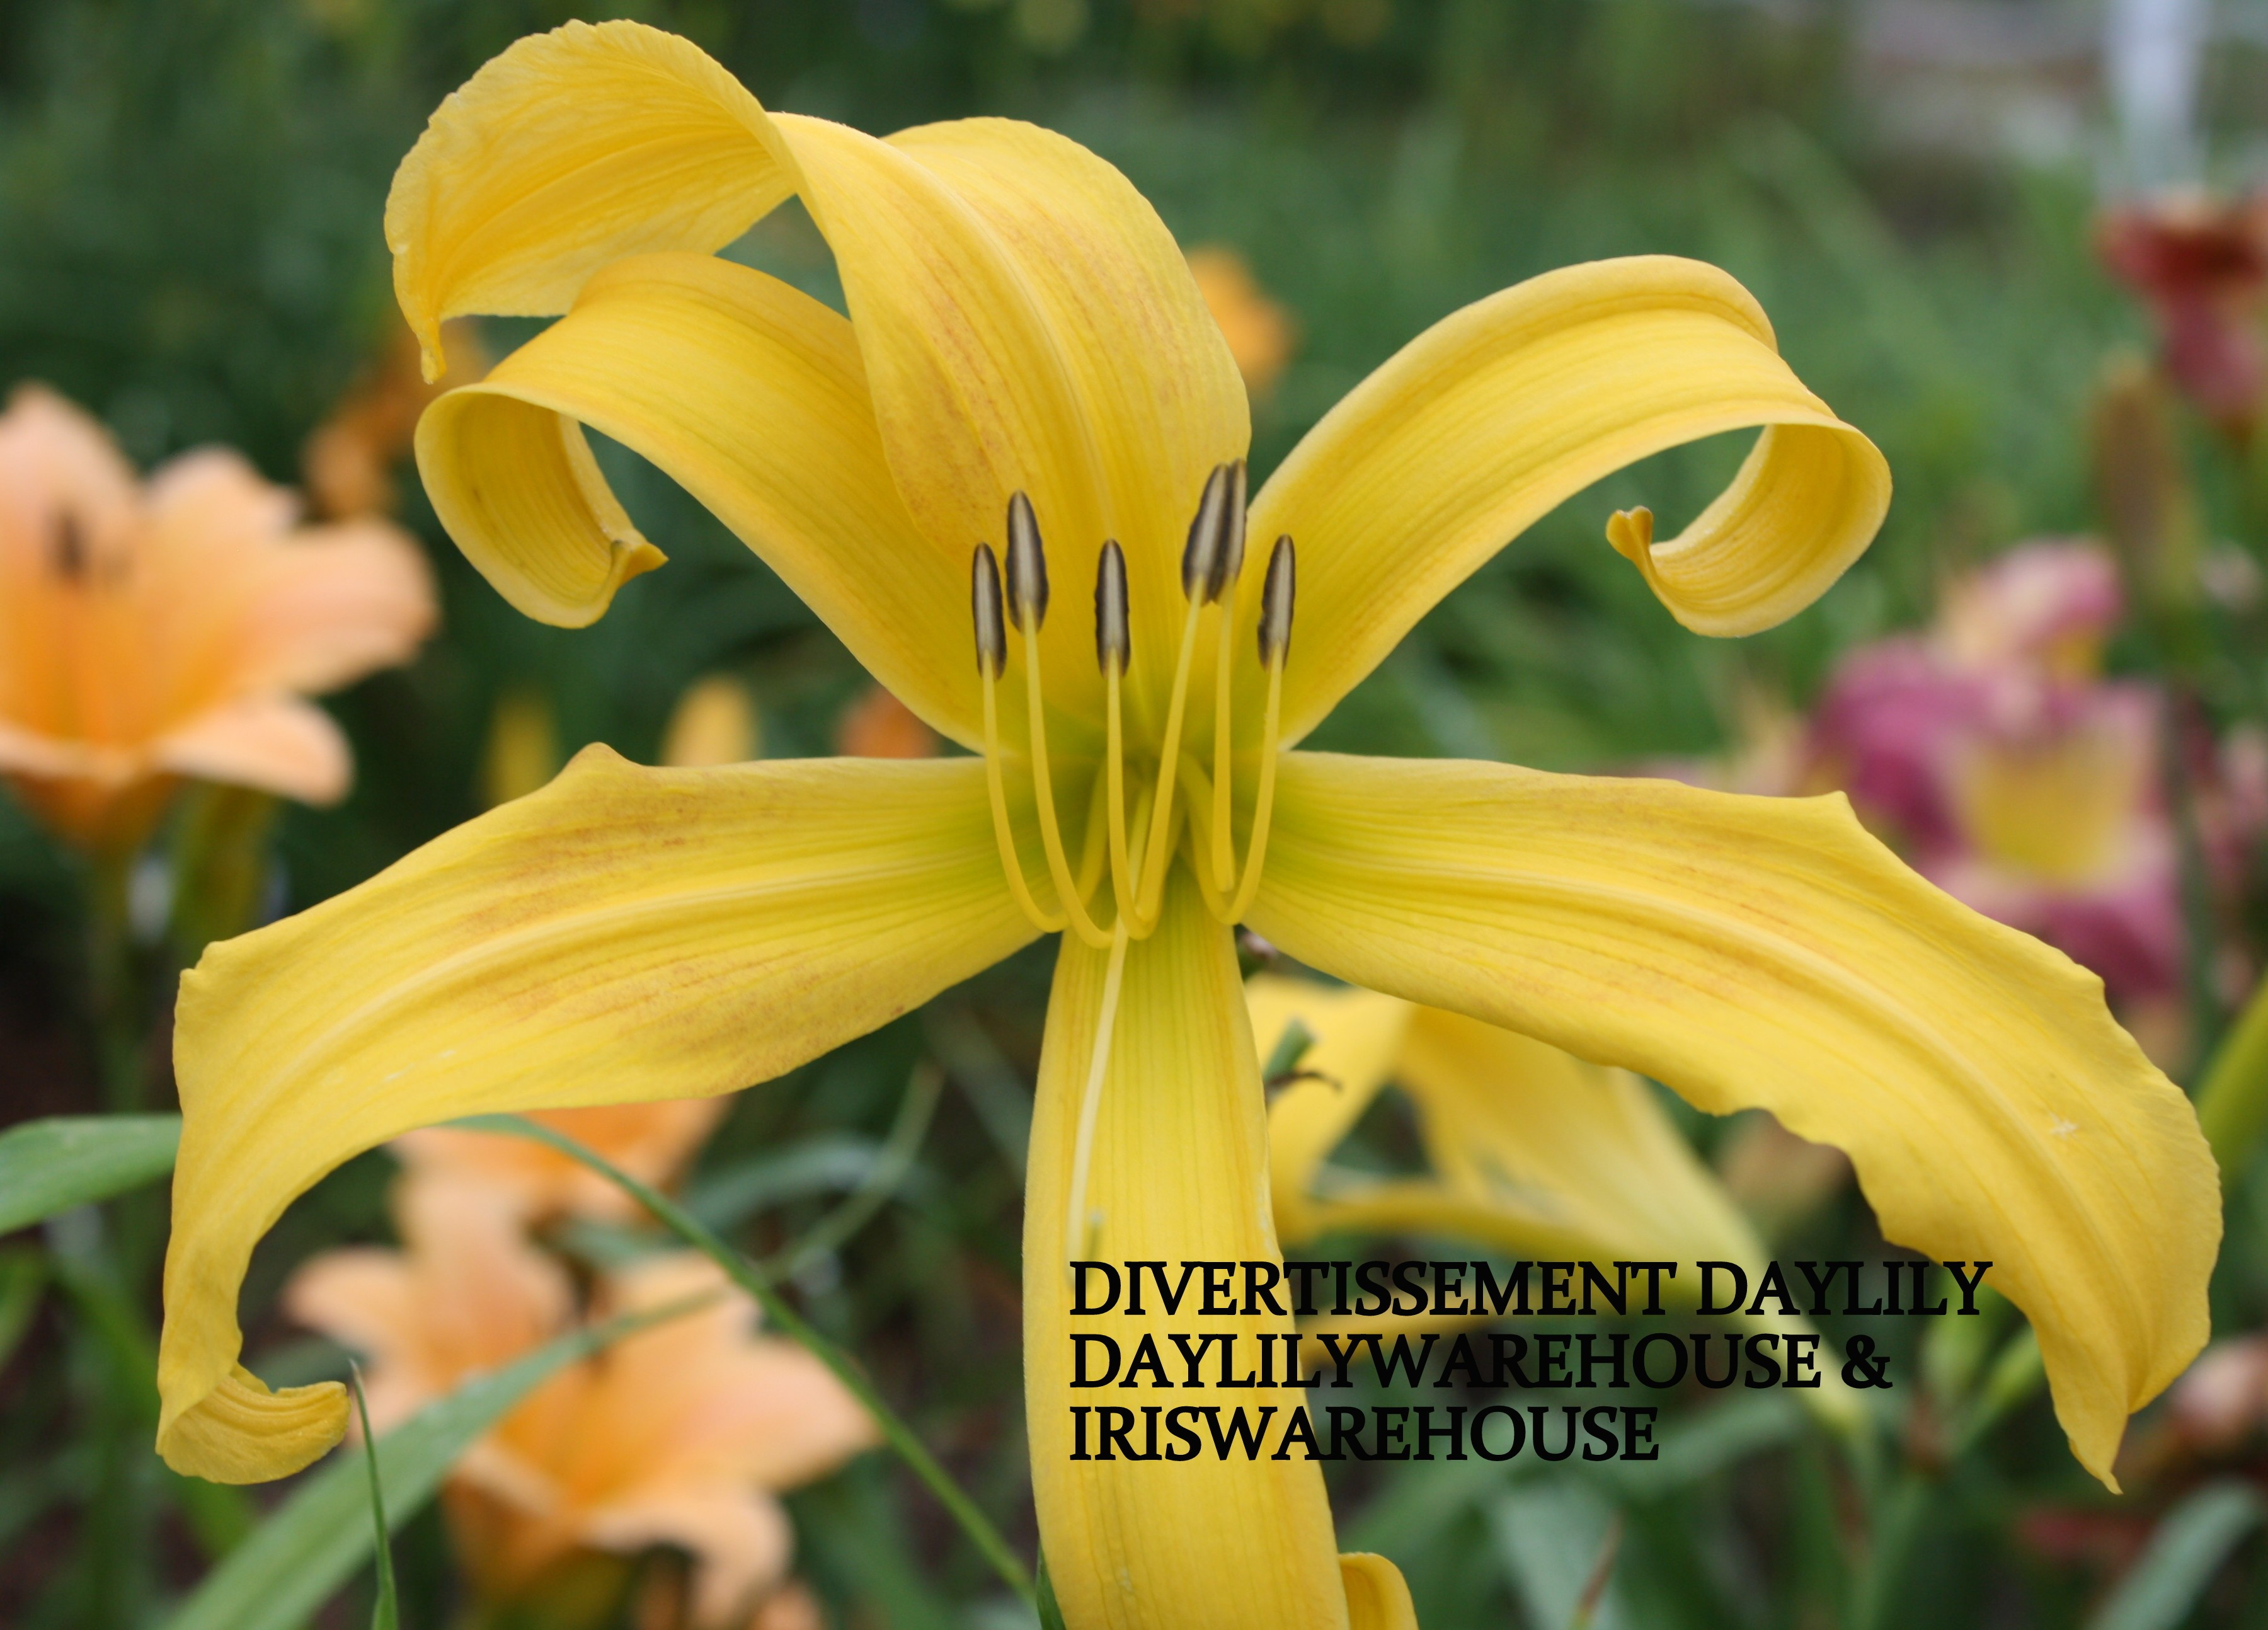 Diversissment Daylily